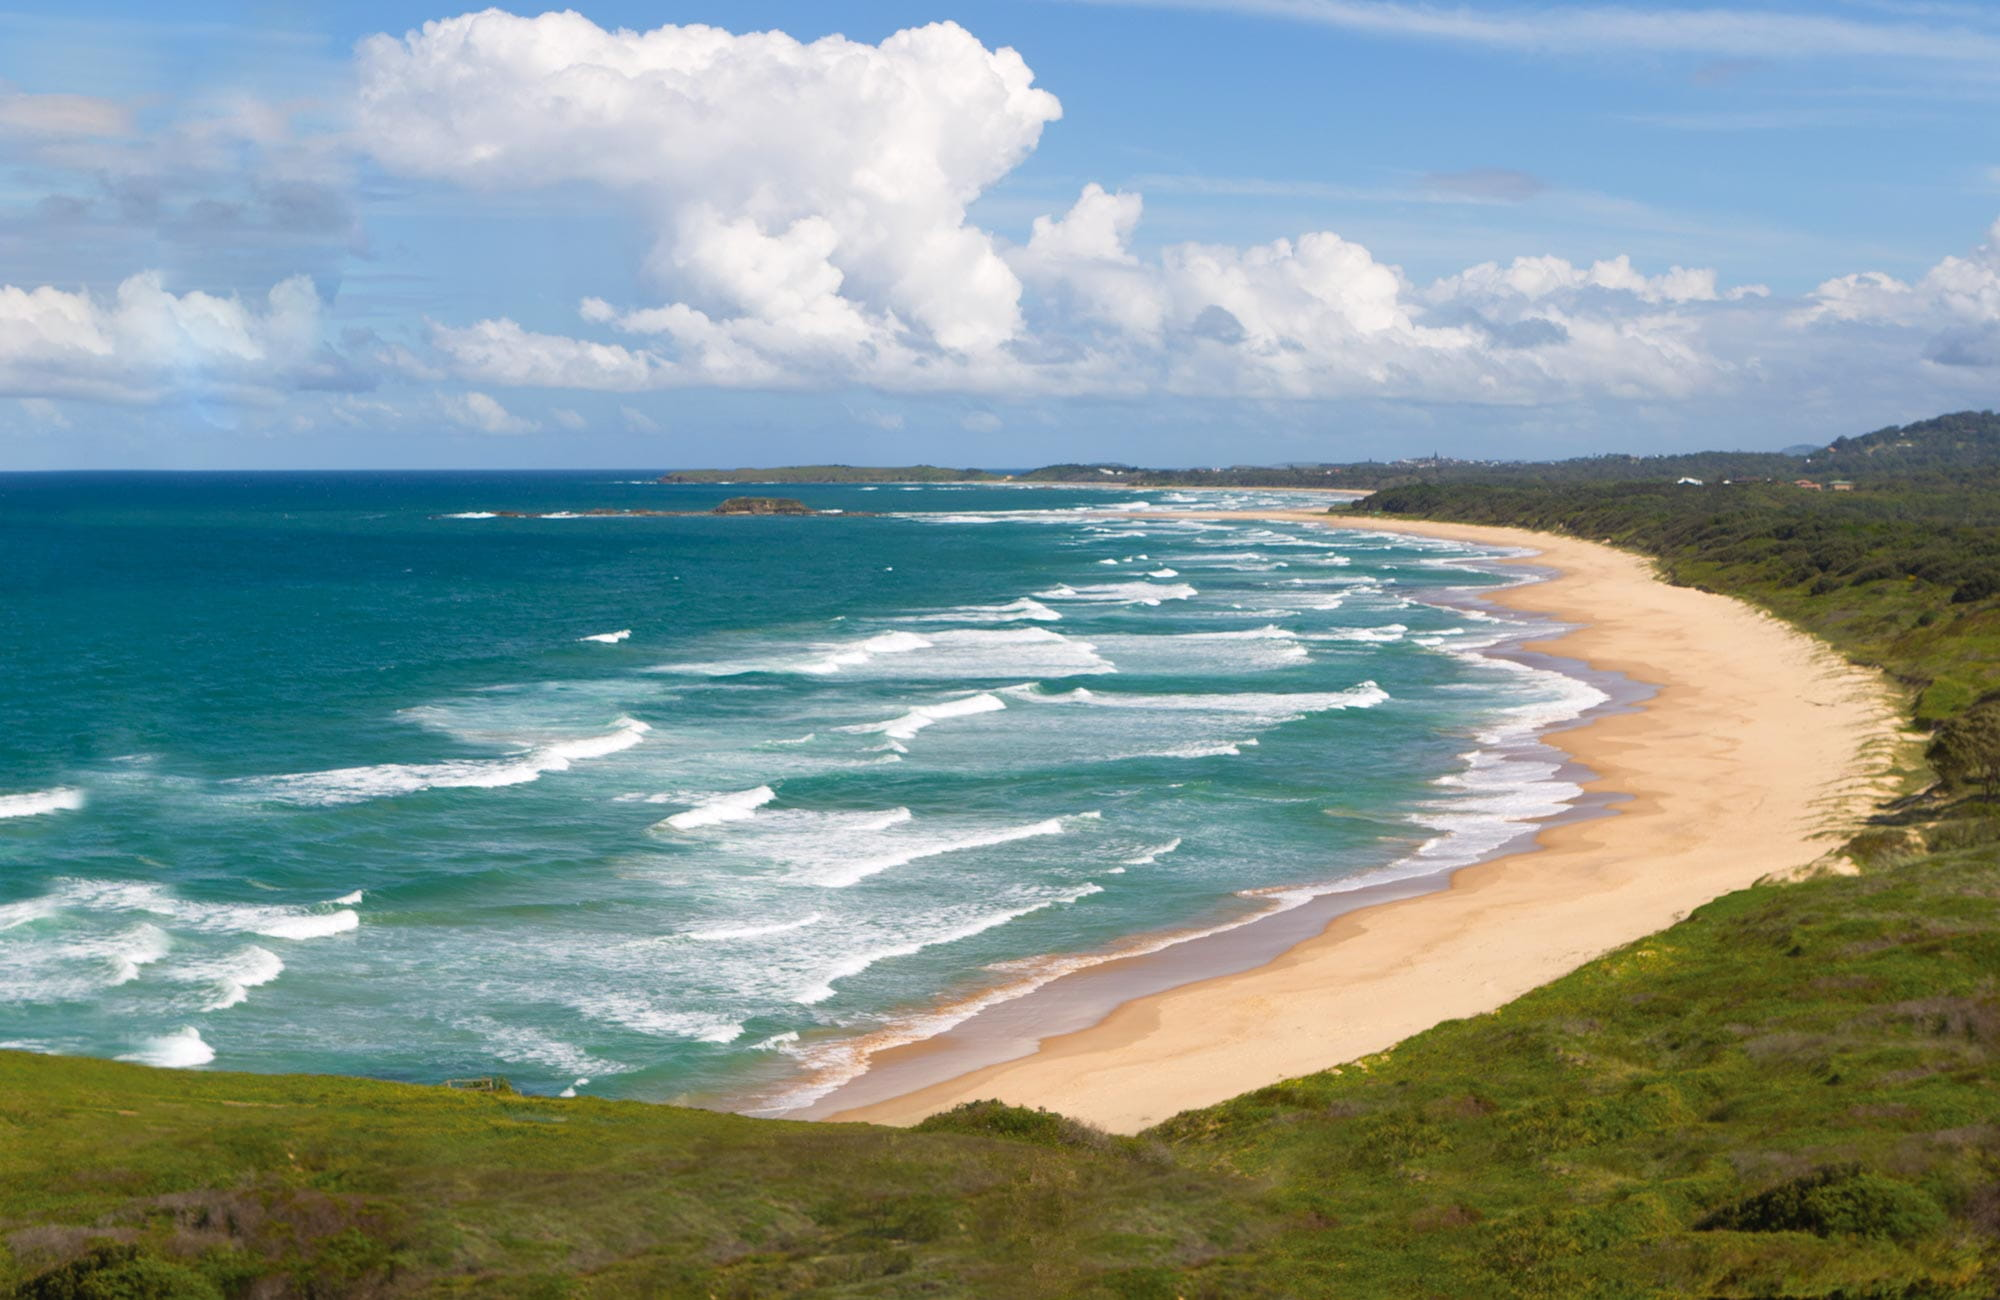 The view from Woolgoolga headland along the beach. Photo: Rob Cleary